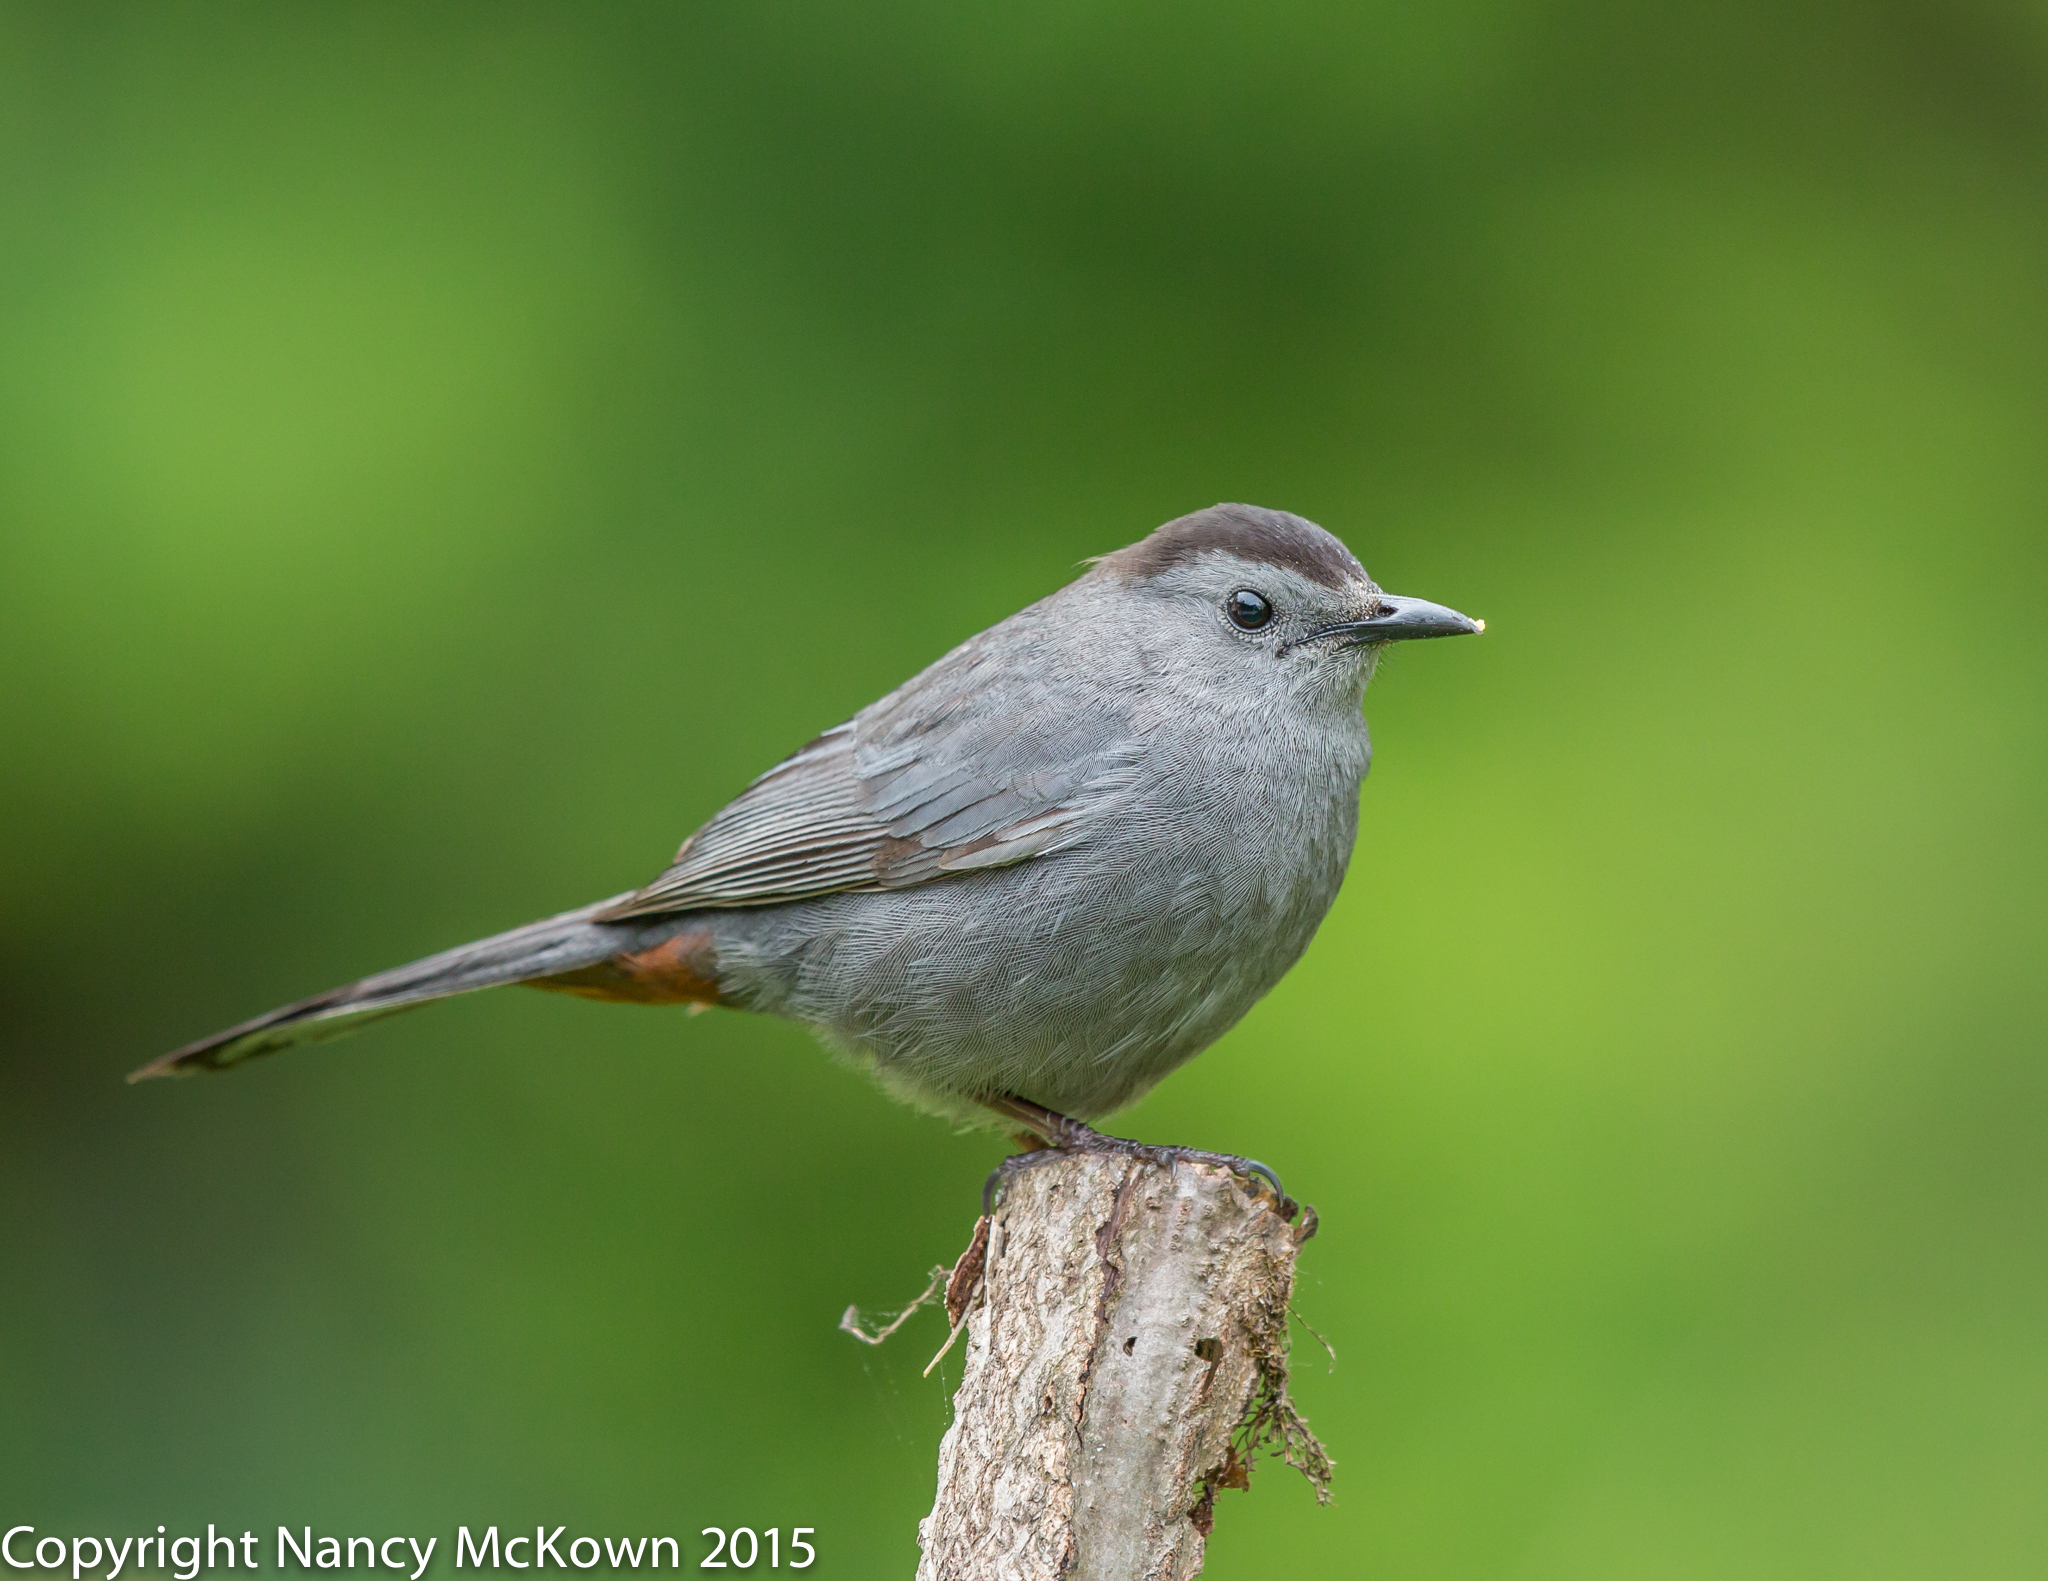 Photograph of Gray Catbird